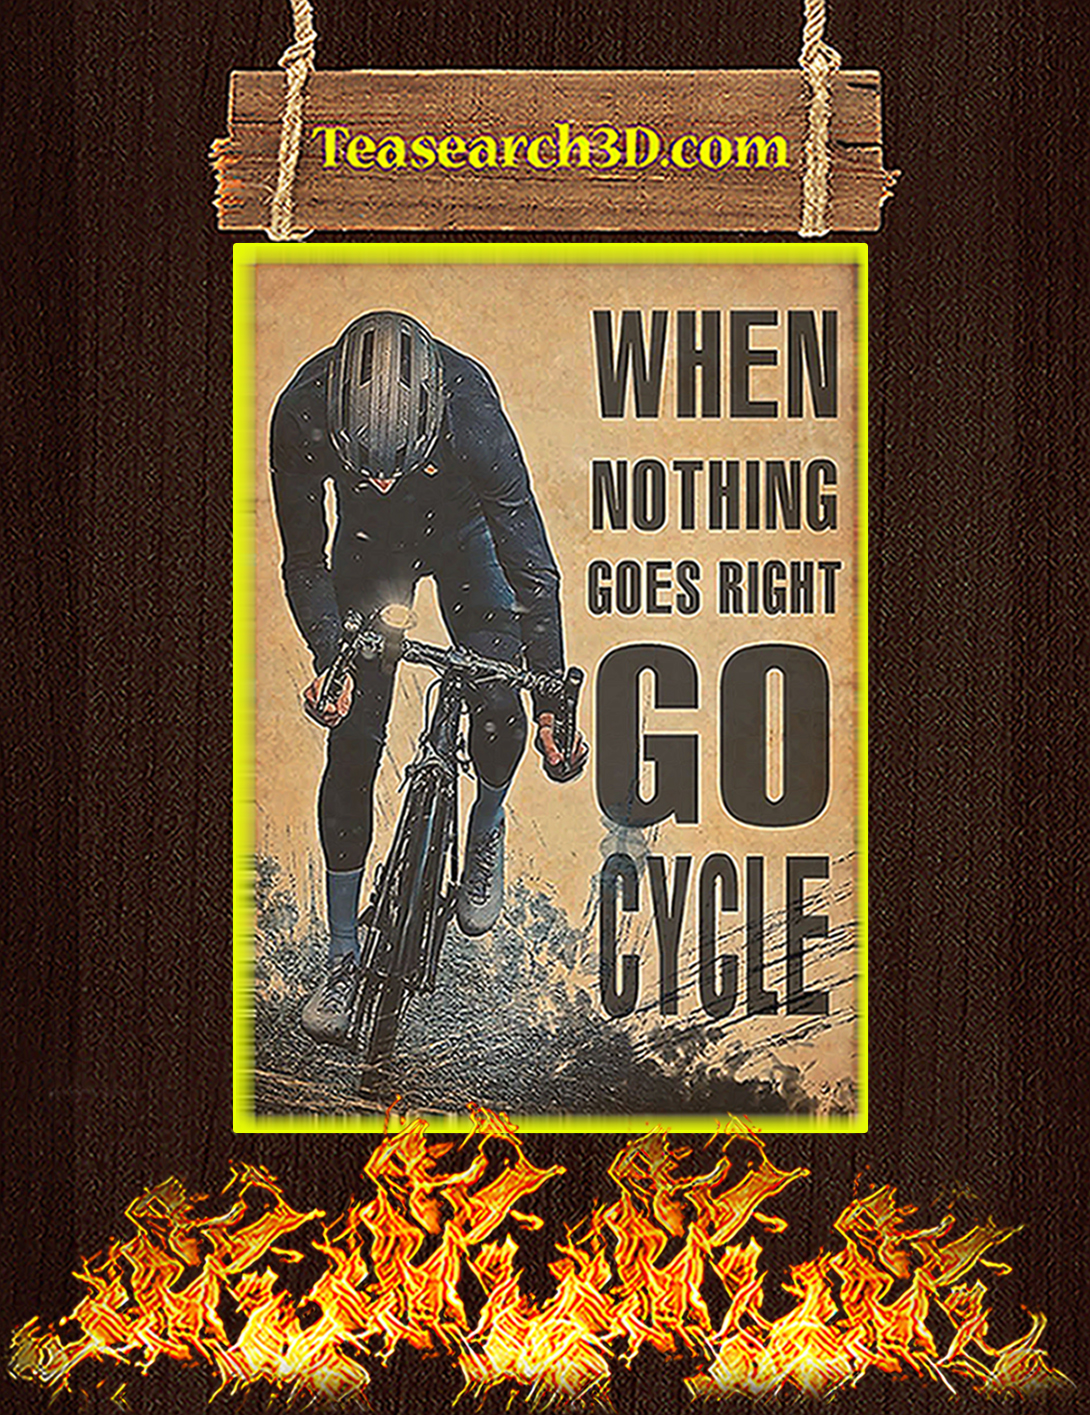 When nothing goes right go cycle poster A2